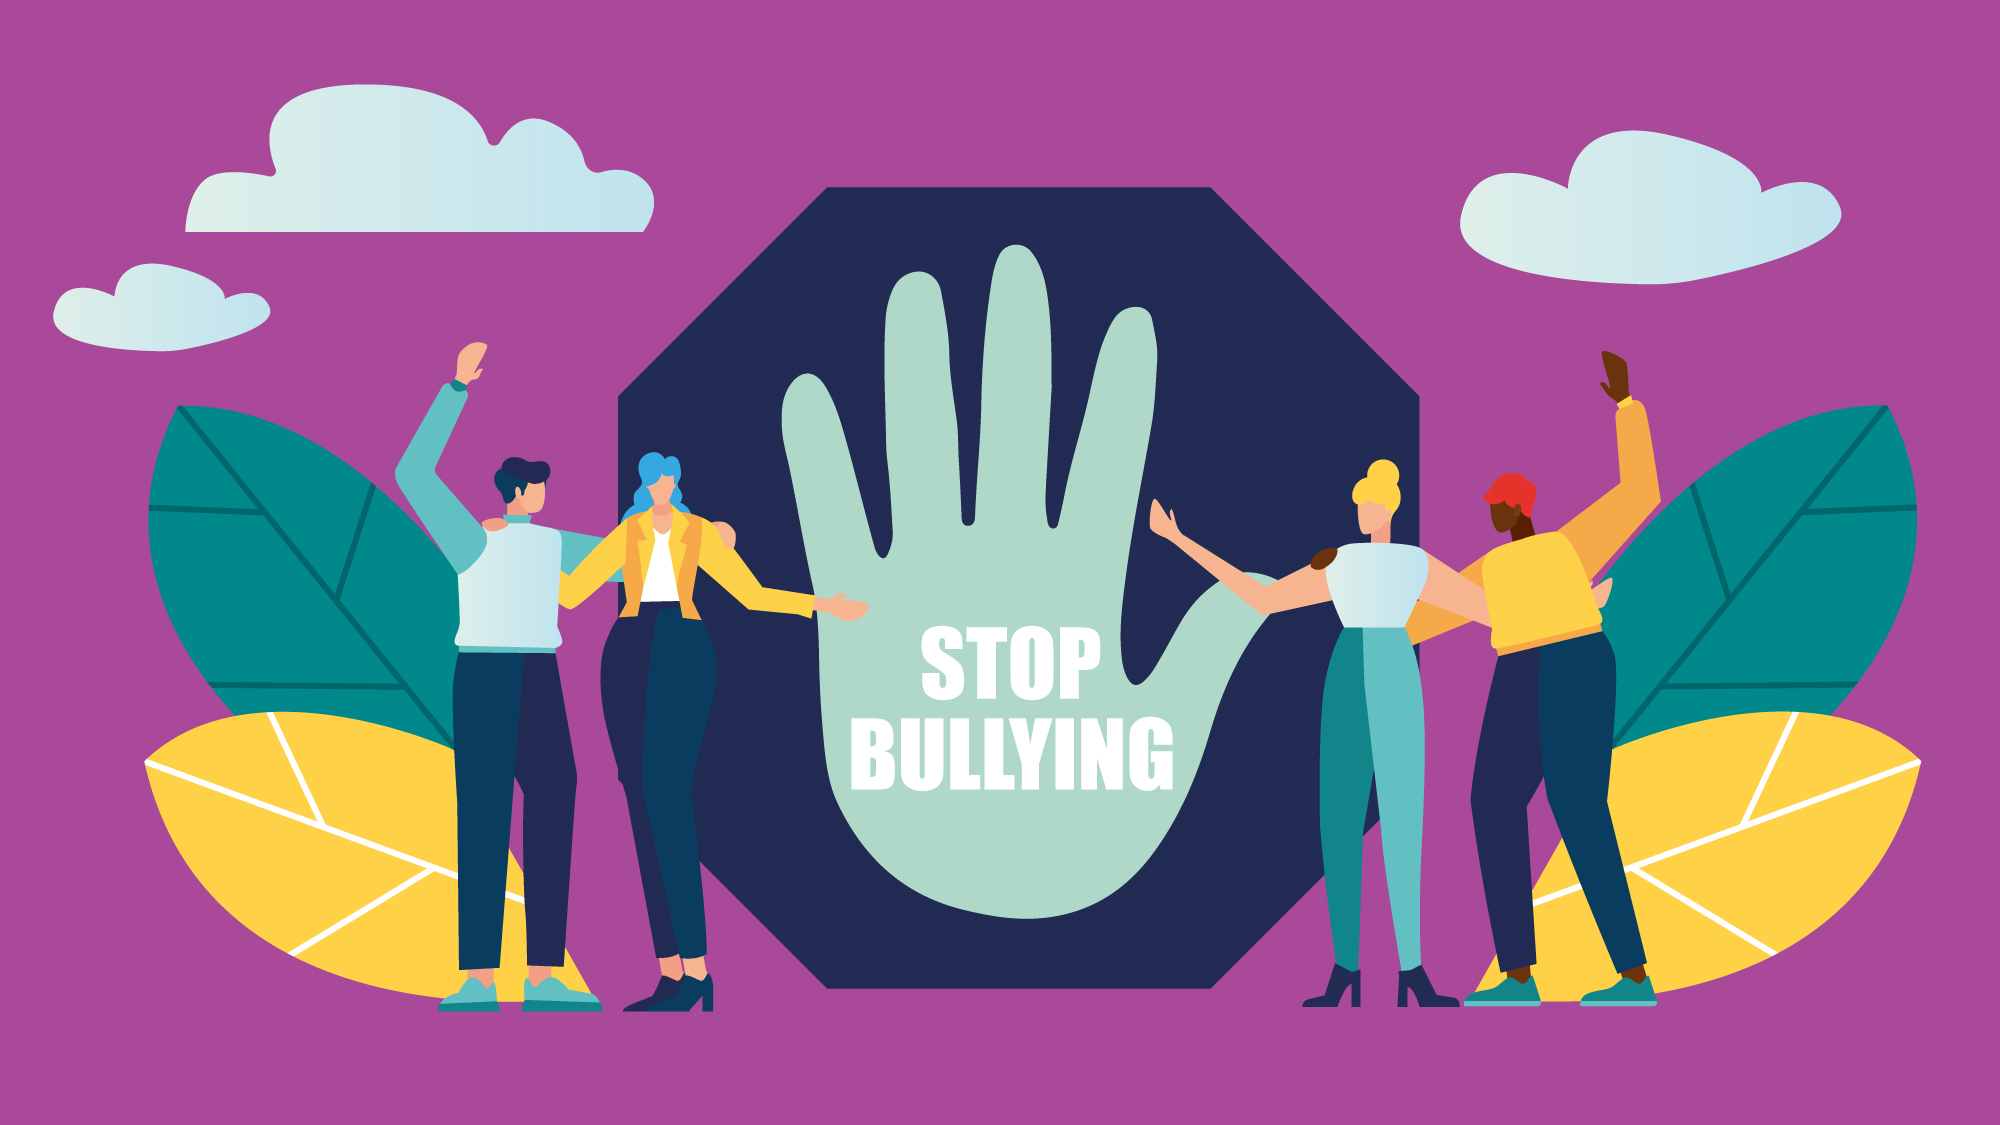 illustration representing stopping bullying